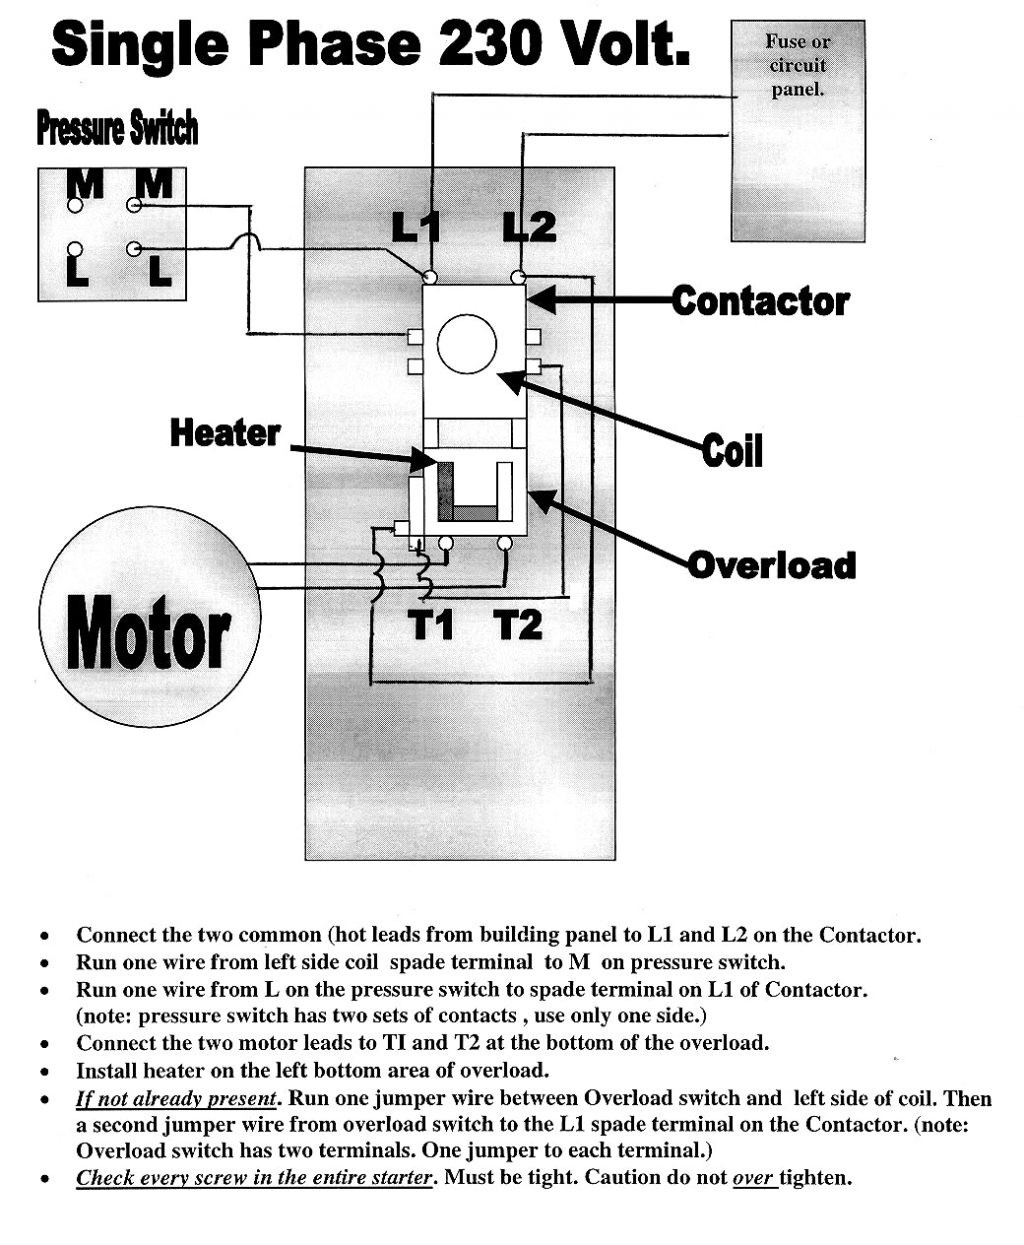 240 Volt Single Phase Wiring Diagram - Example Electrical Wiring ...